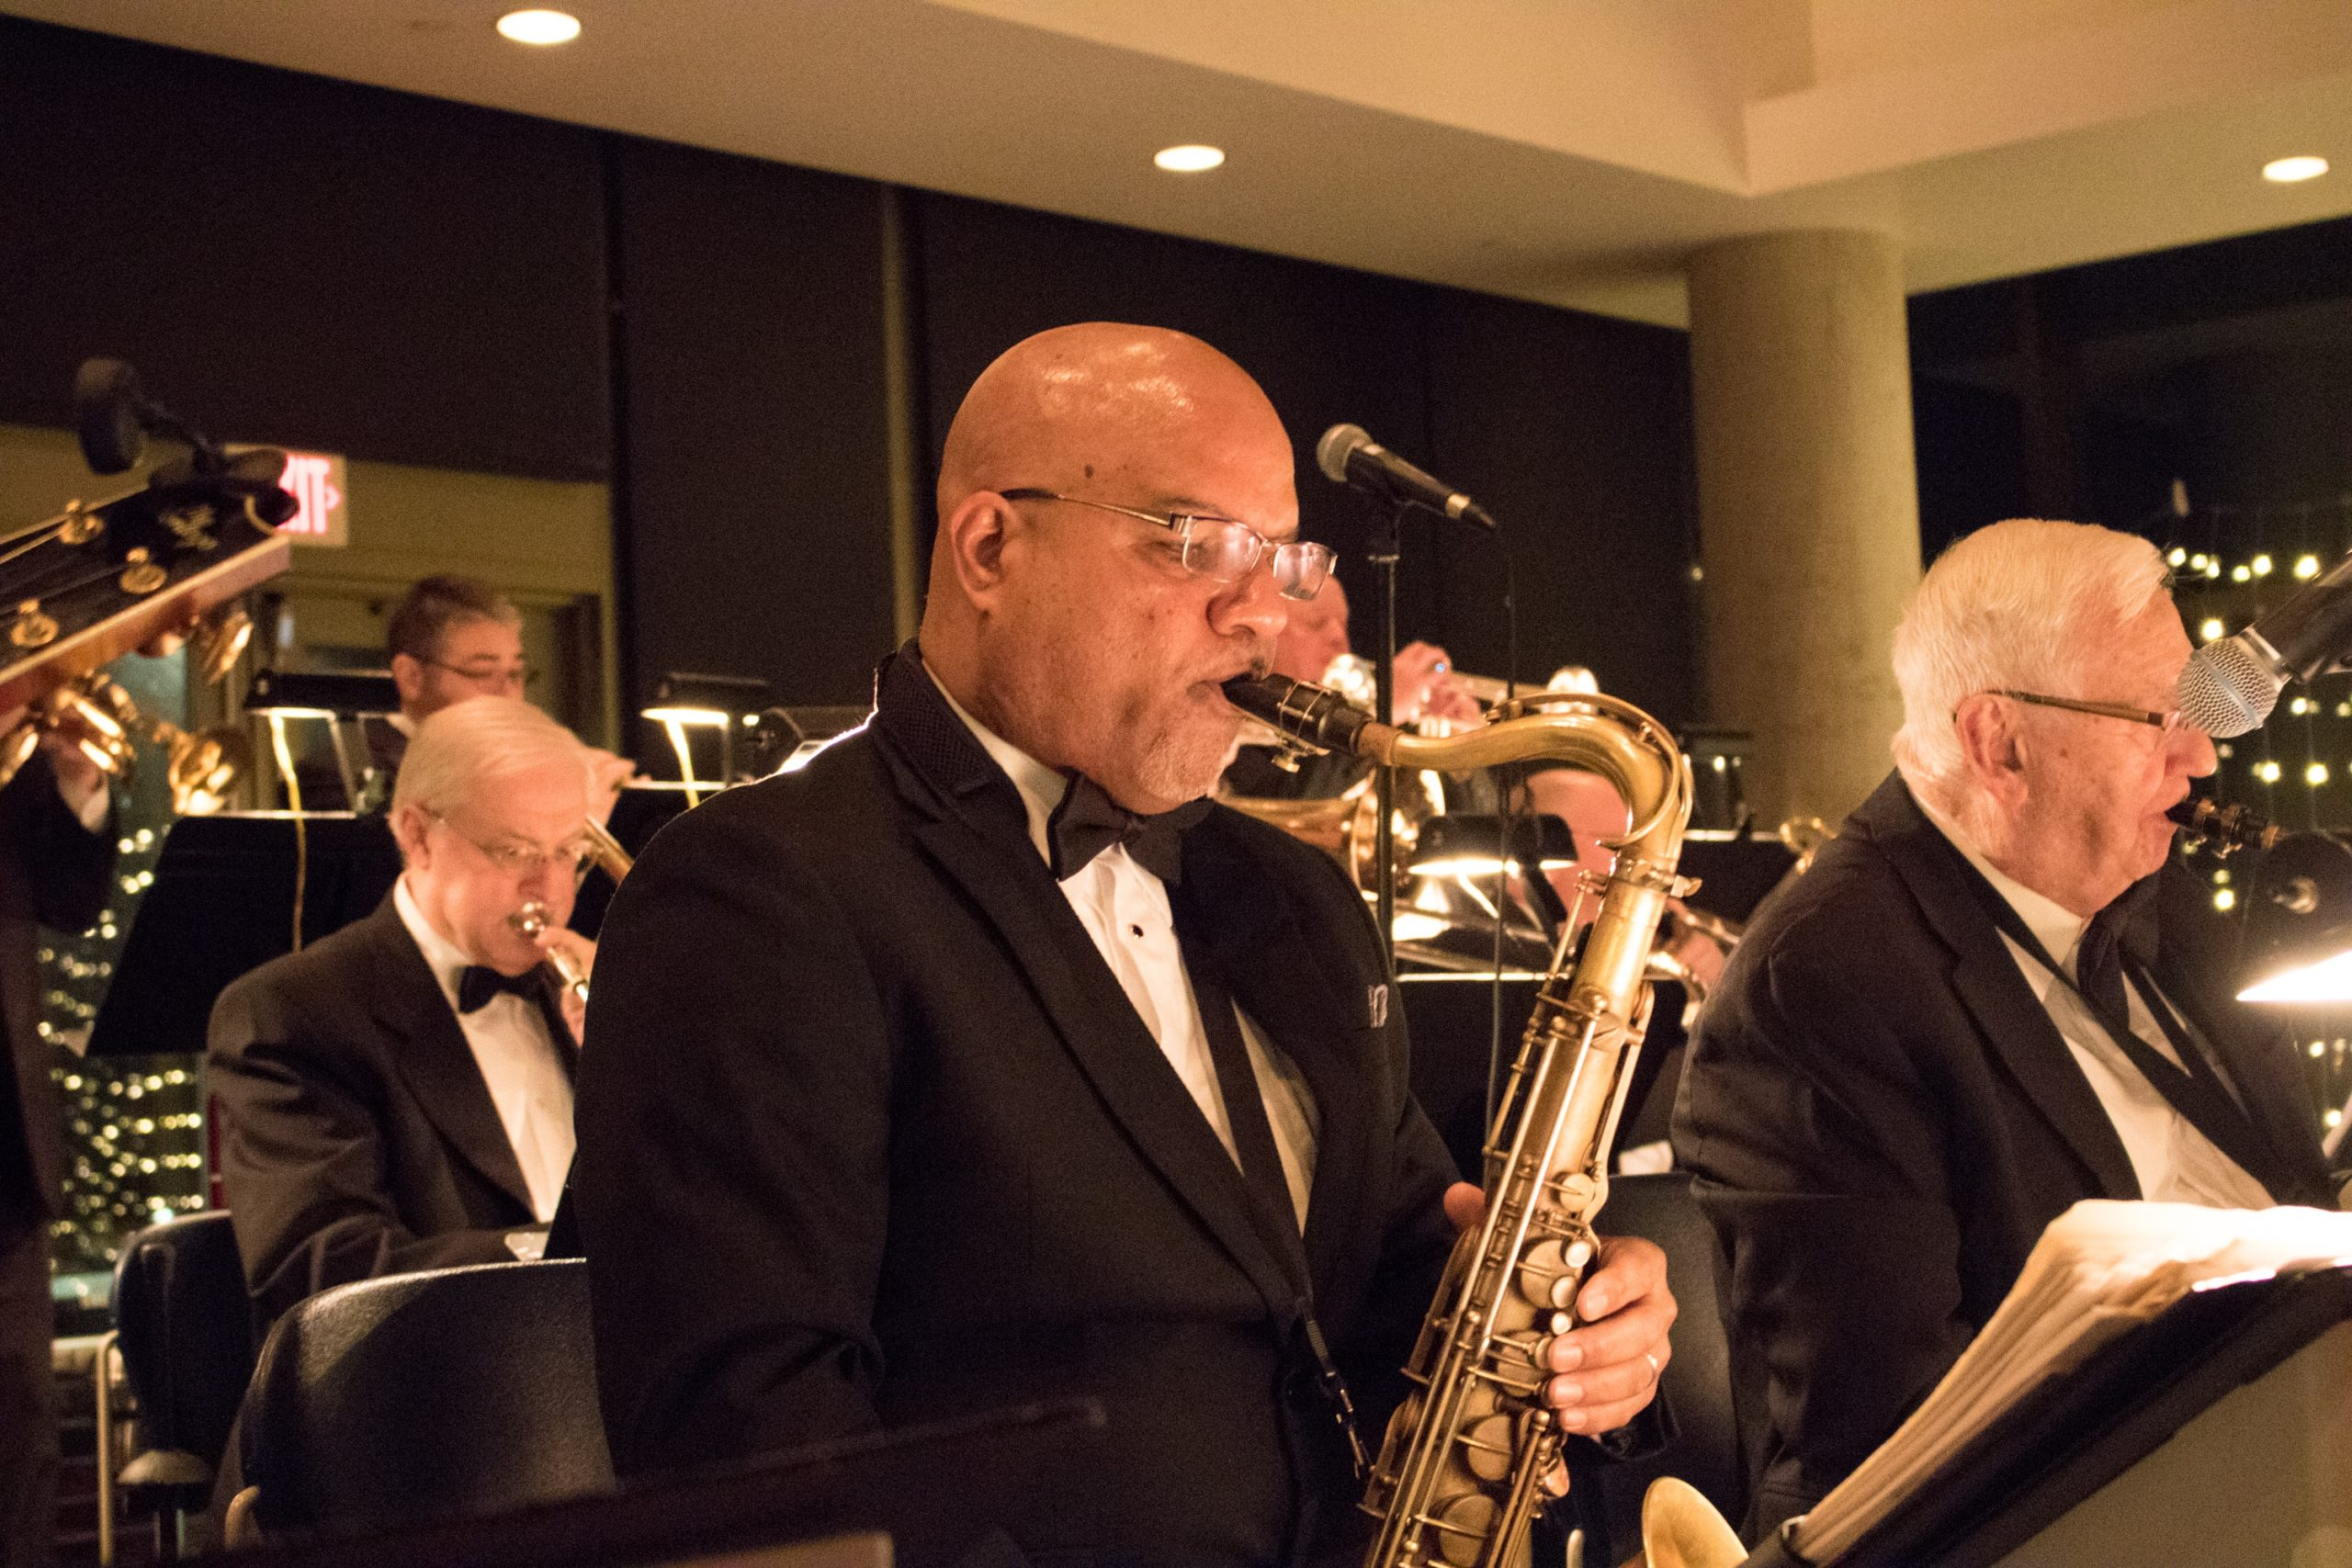 Bald Black man in a suit plays saxophone with white musicians around him.